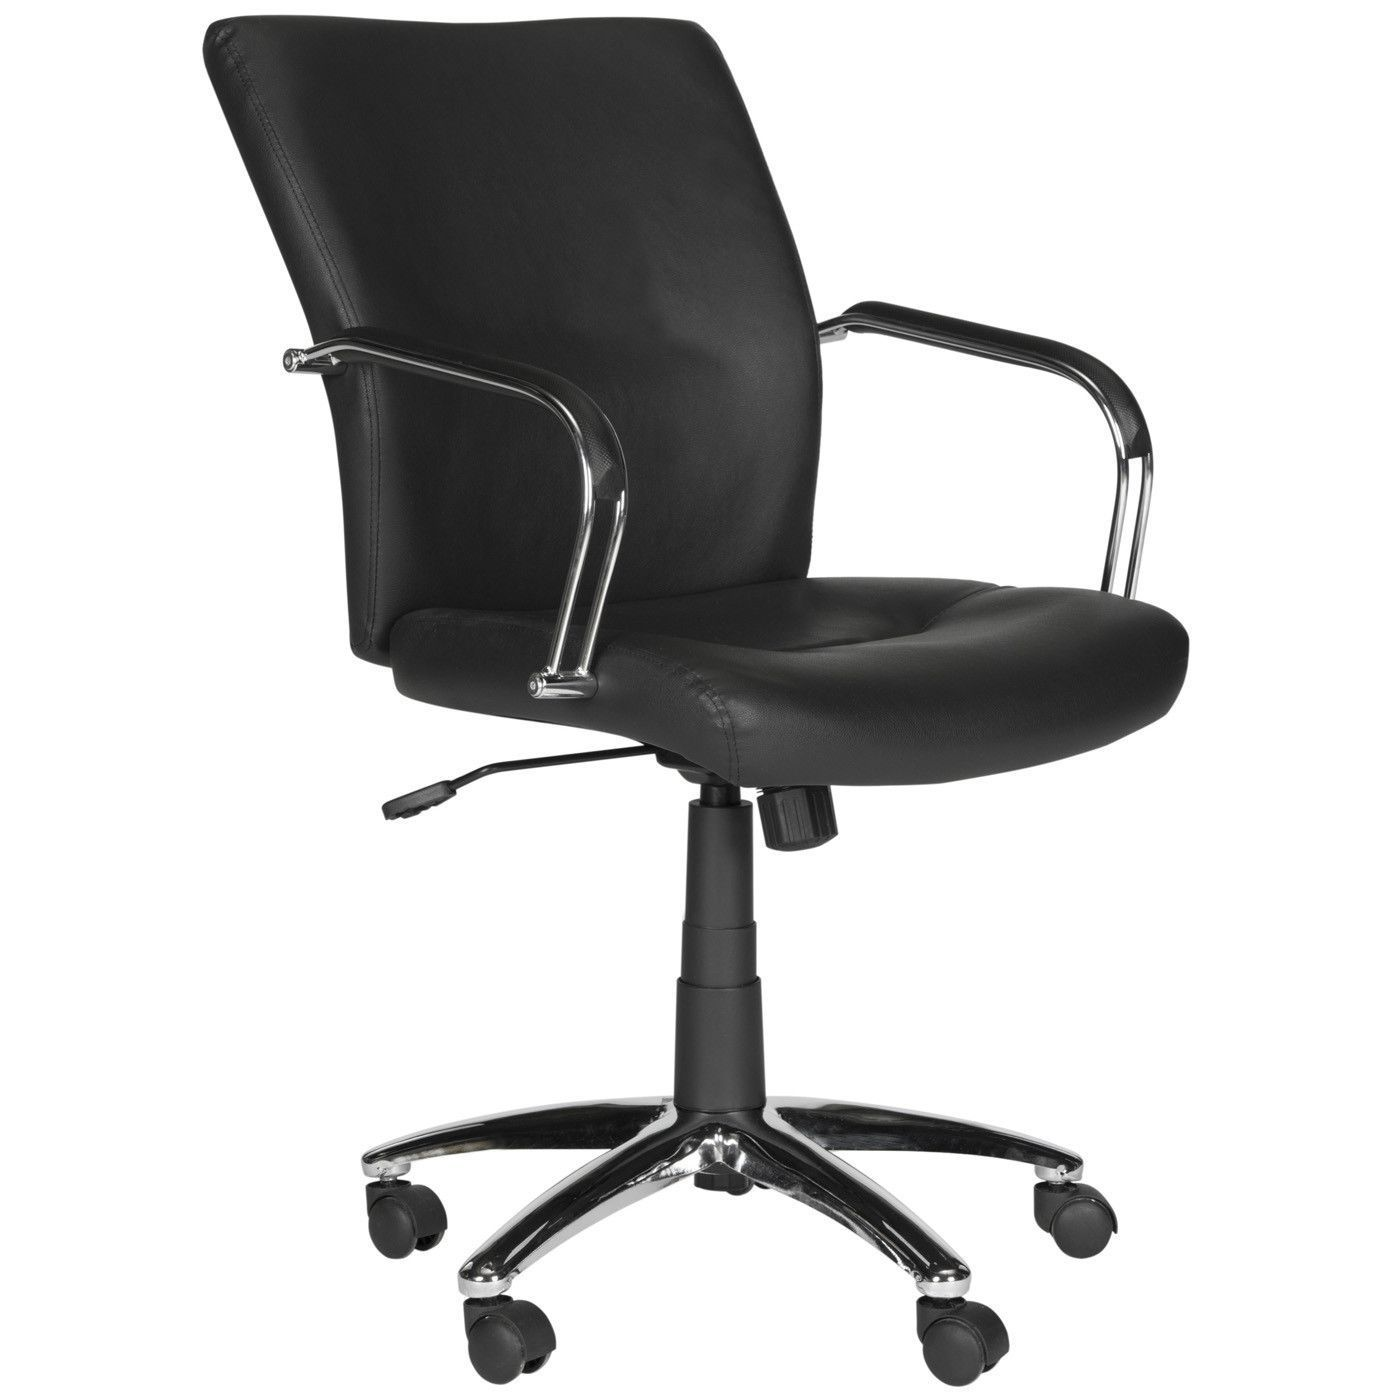 Lysette Desk Chair Black Best Office Chair Office Chair Rolling Desk Chair